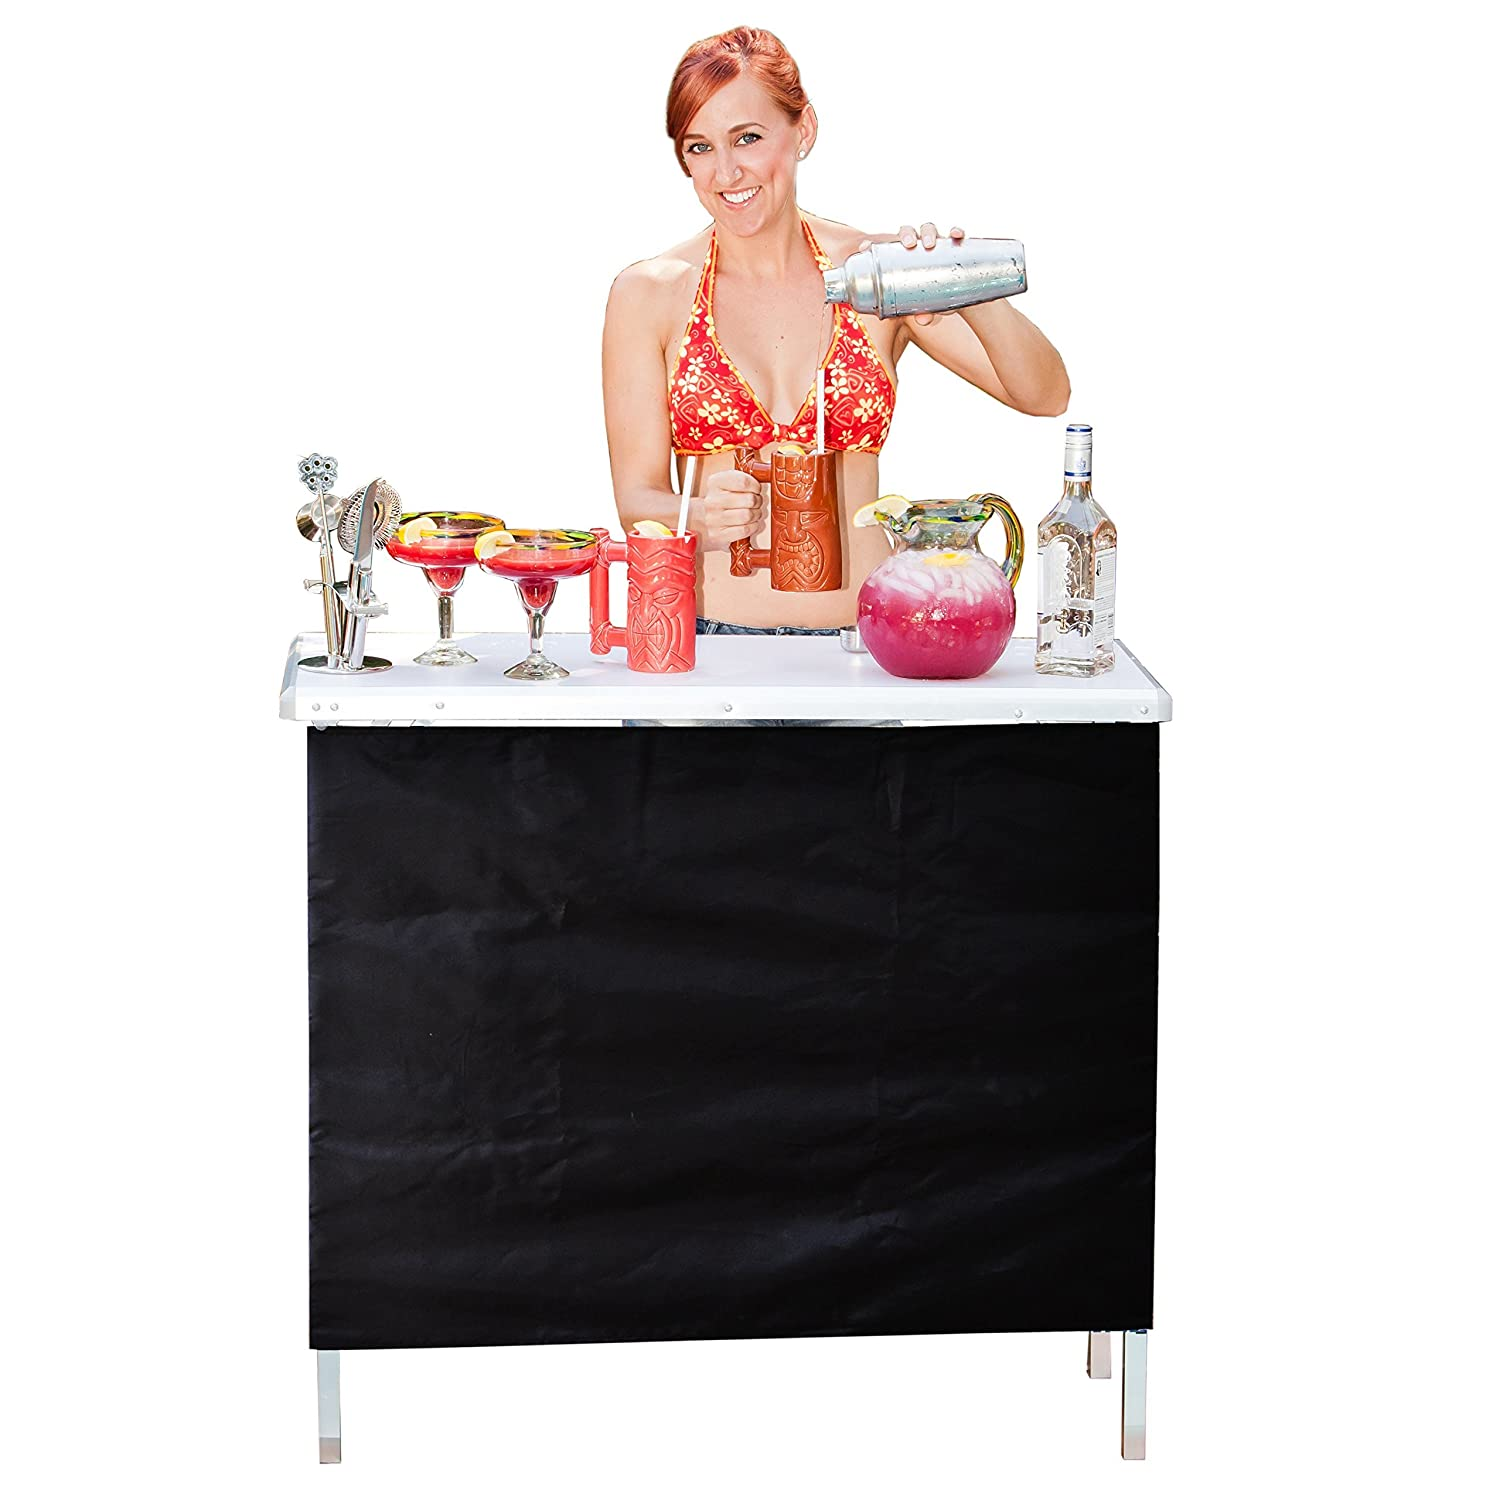 GoPong Portable High Top Party Bar Table with Shelf – 15L x 39W x 36H – Includes 3 Front Skirts and Carrying Case Renewed